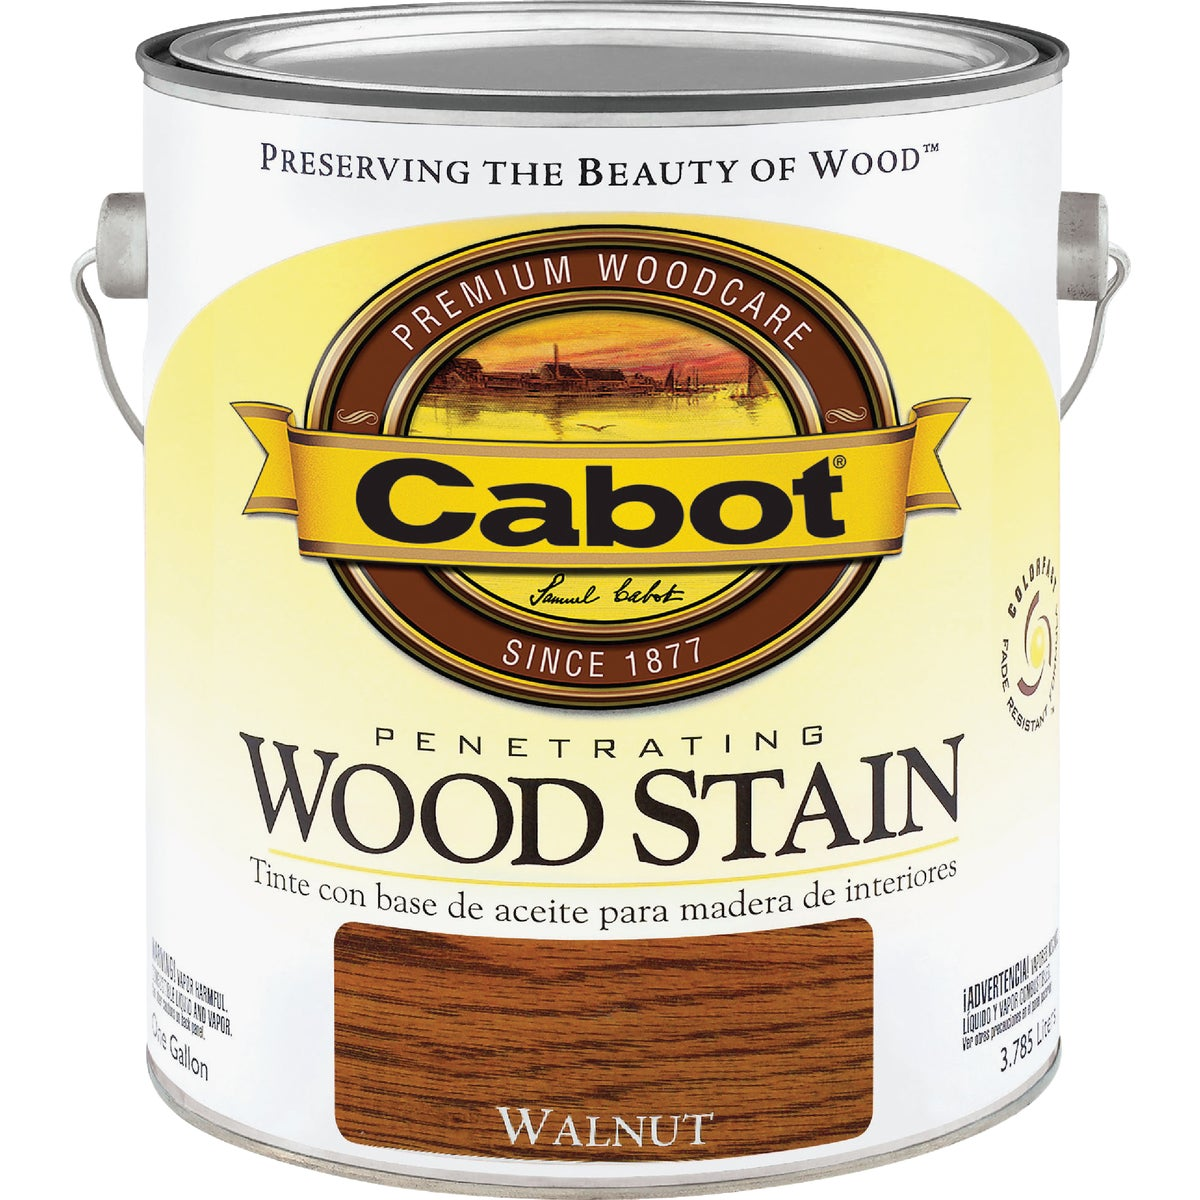 INT WALNUT WOOD STAIN - 144.0008130.007 by Valspar Corp